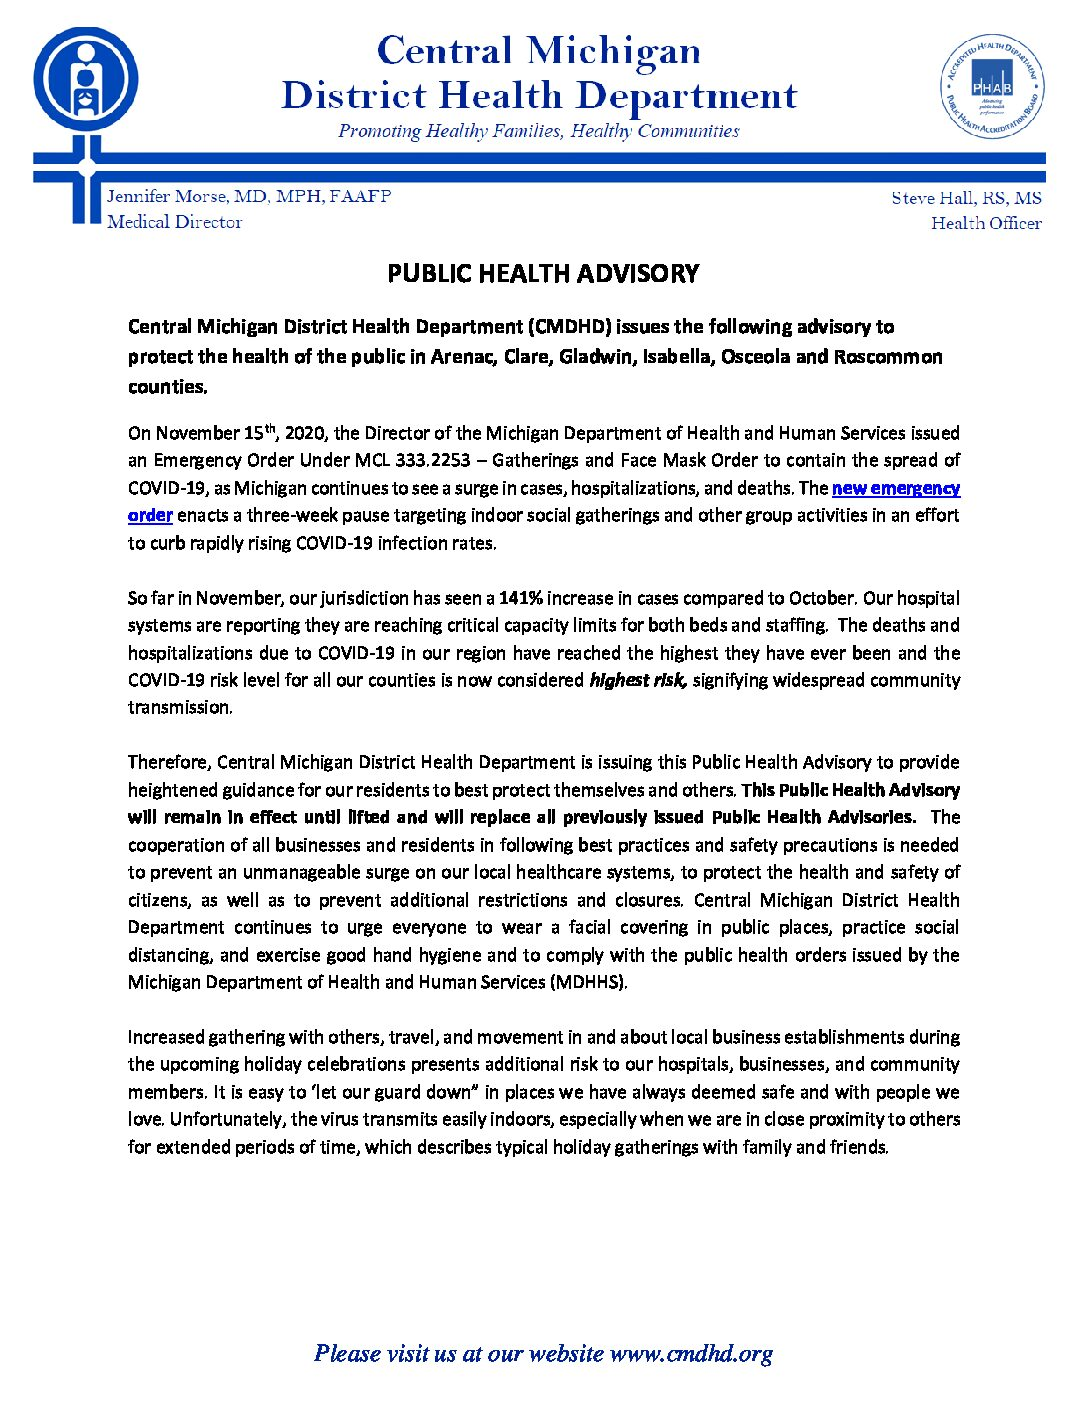 preview image of first page Central Michigan District Health Department (CMDHD) issues the following advisory